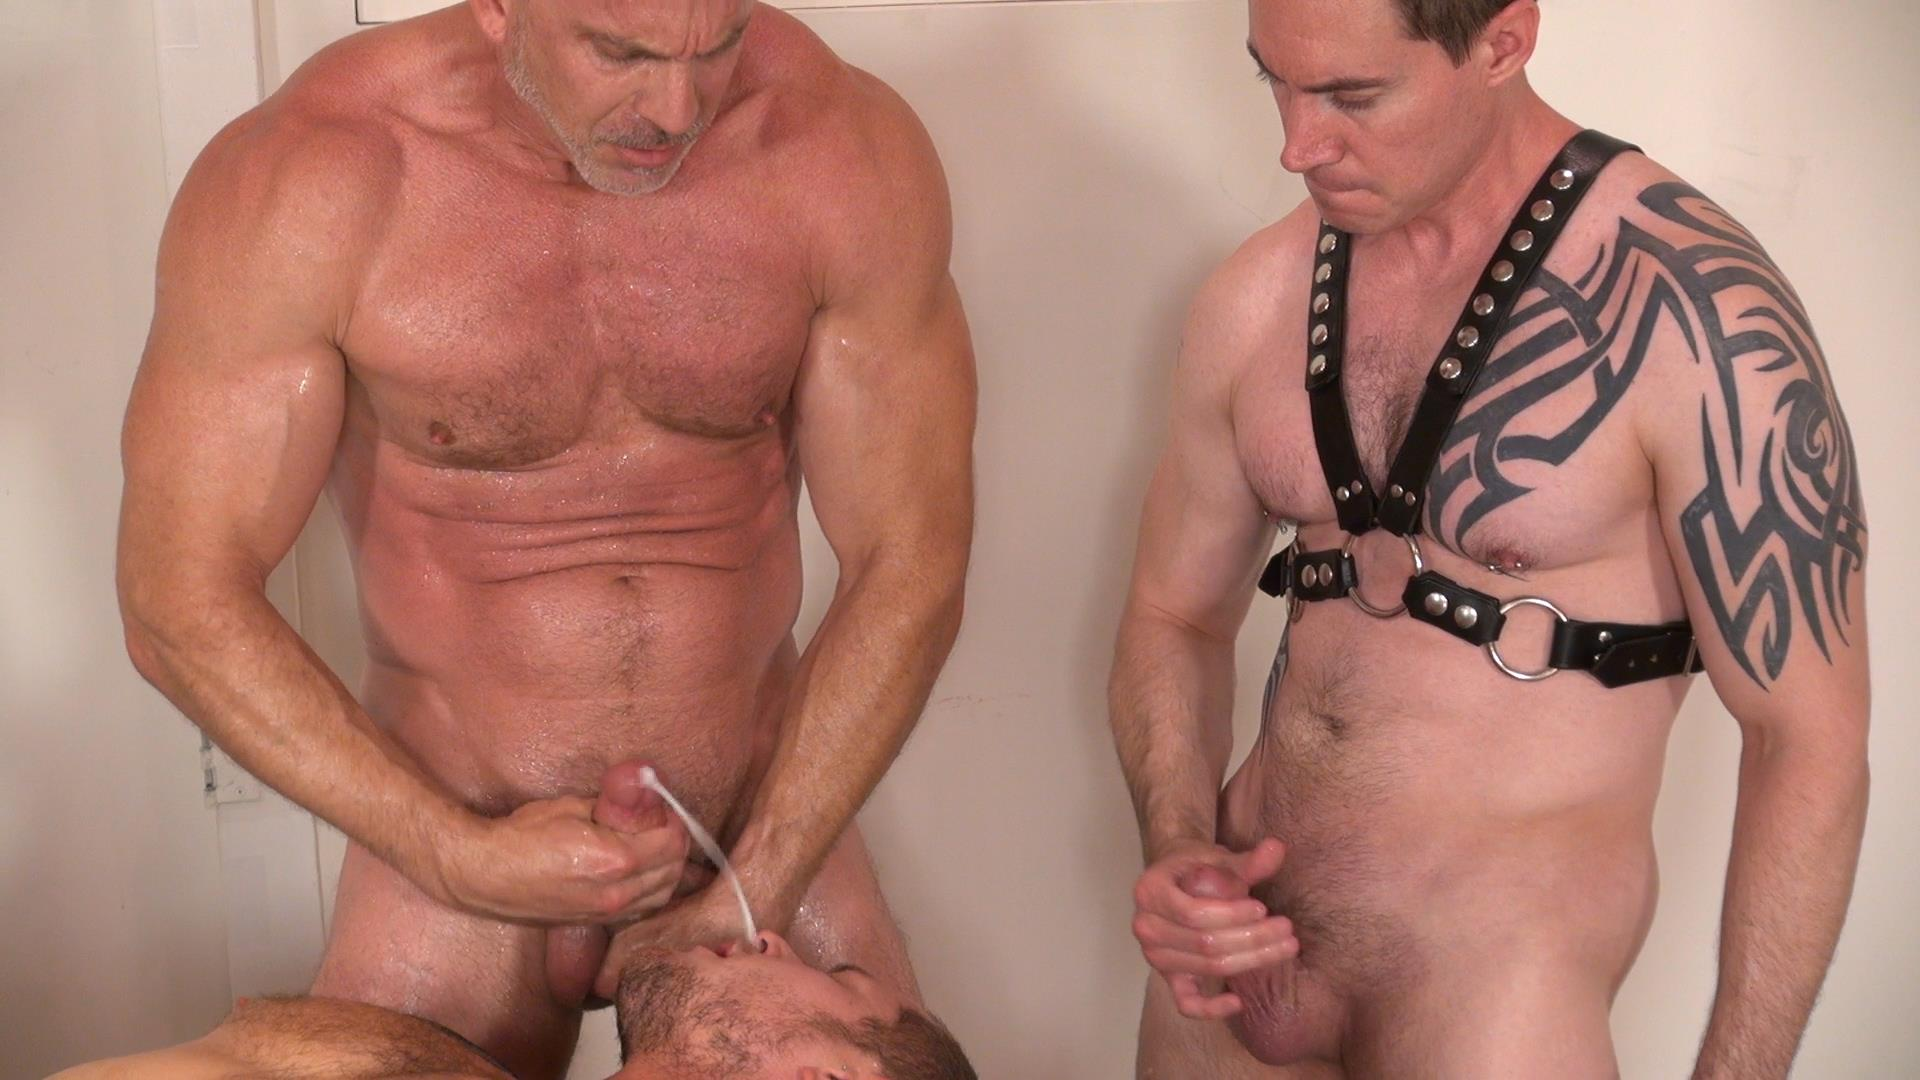 Raw and Rough Jason Mitchell Steven Richards Sam Dixon Blue Bailey Dayton OConnor Jose del Toro Bareback Bathhouse Amateur Gay Porn 02 Blue Bailey Getting Fucked Bareback By 5 Guys At A Bathhouse